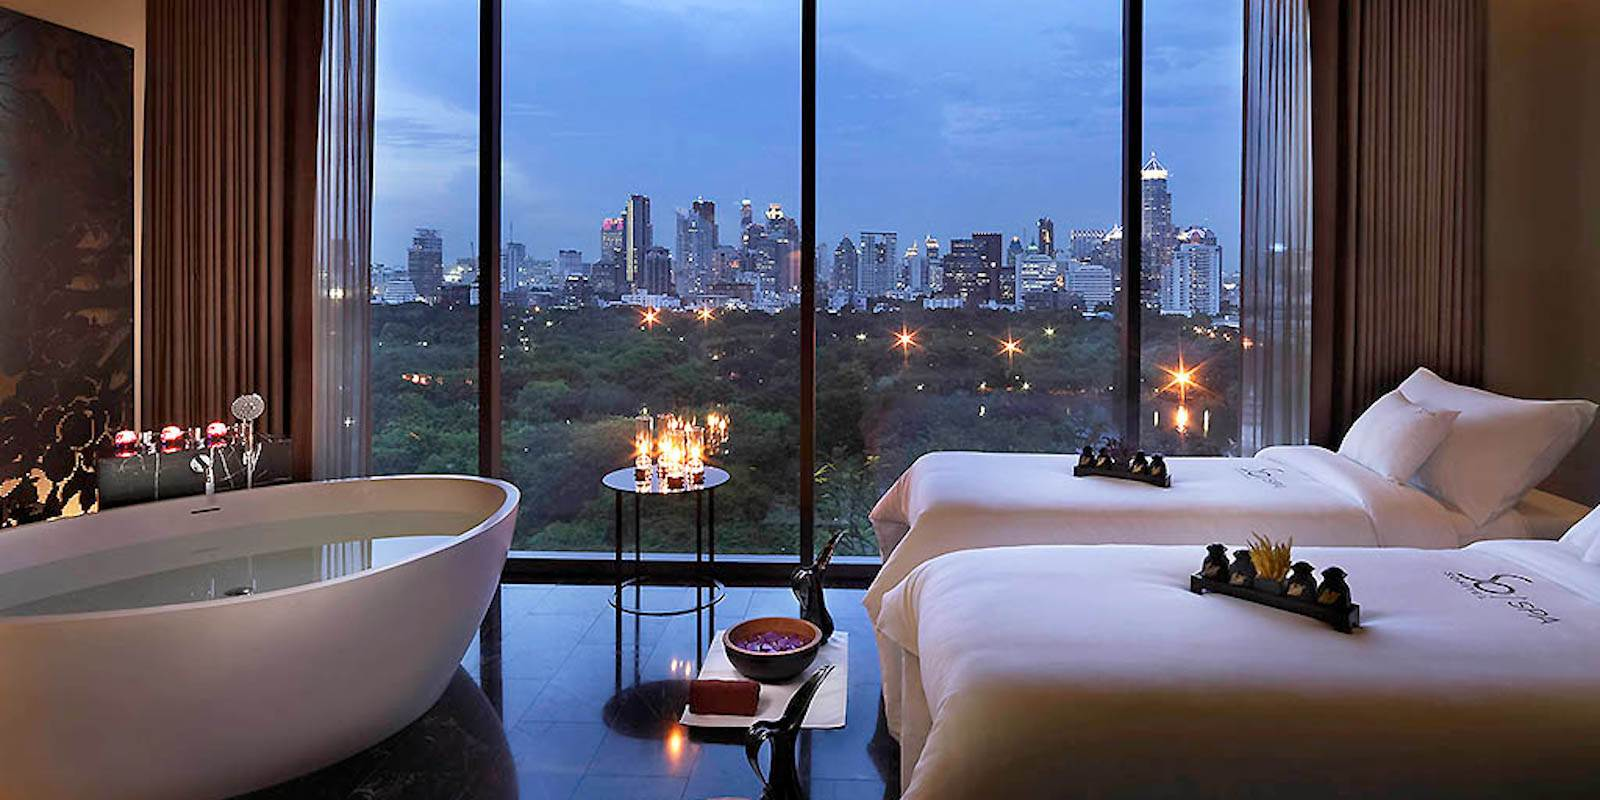 The SO/ Bangkok hotel has some of the most incredible views in Bangkok and luxurious rooms